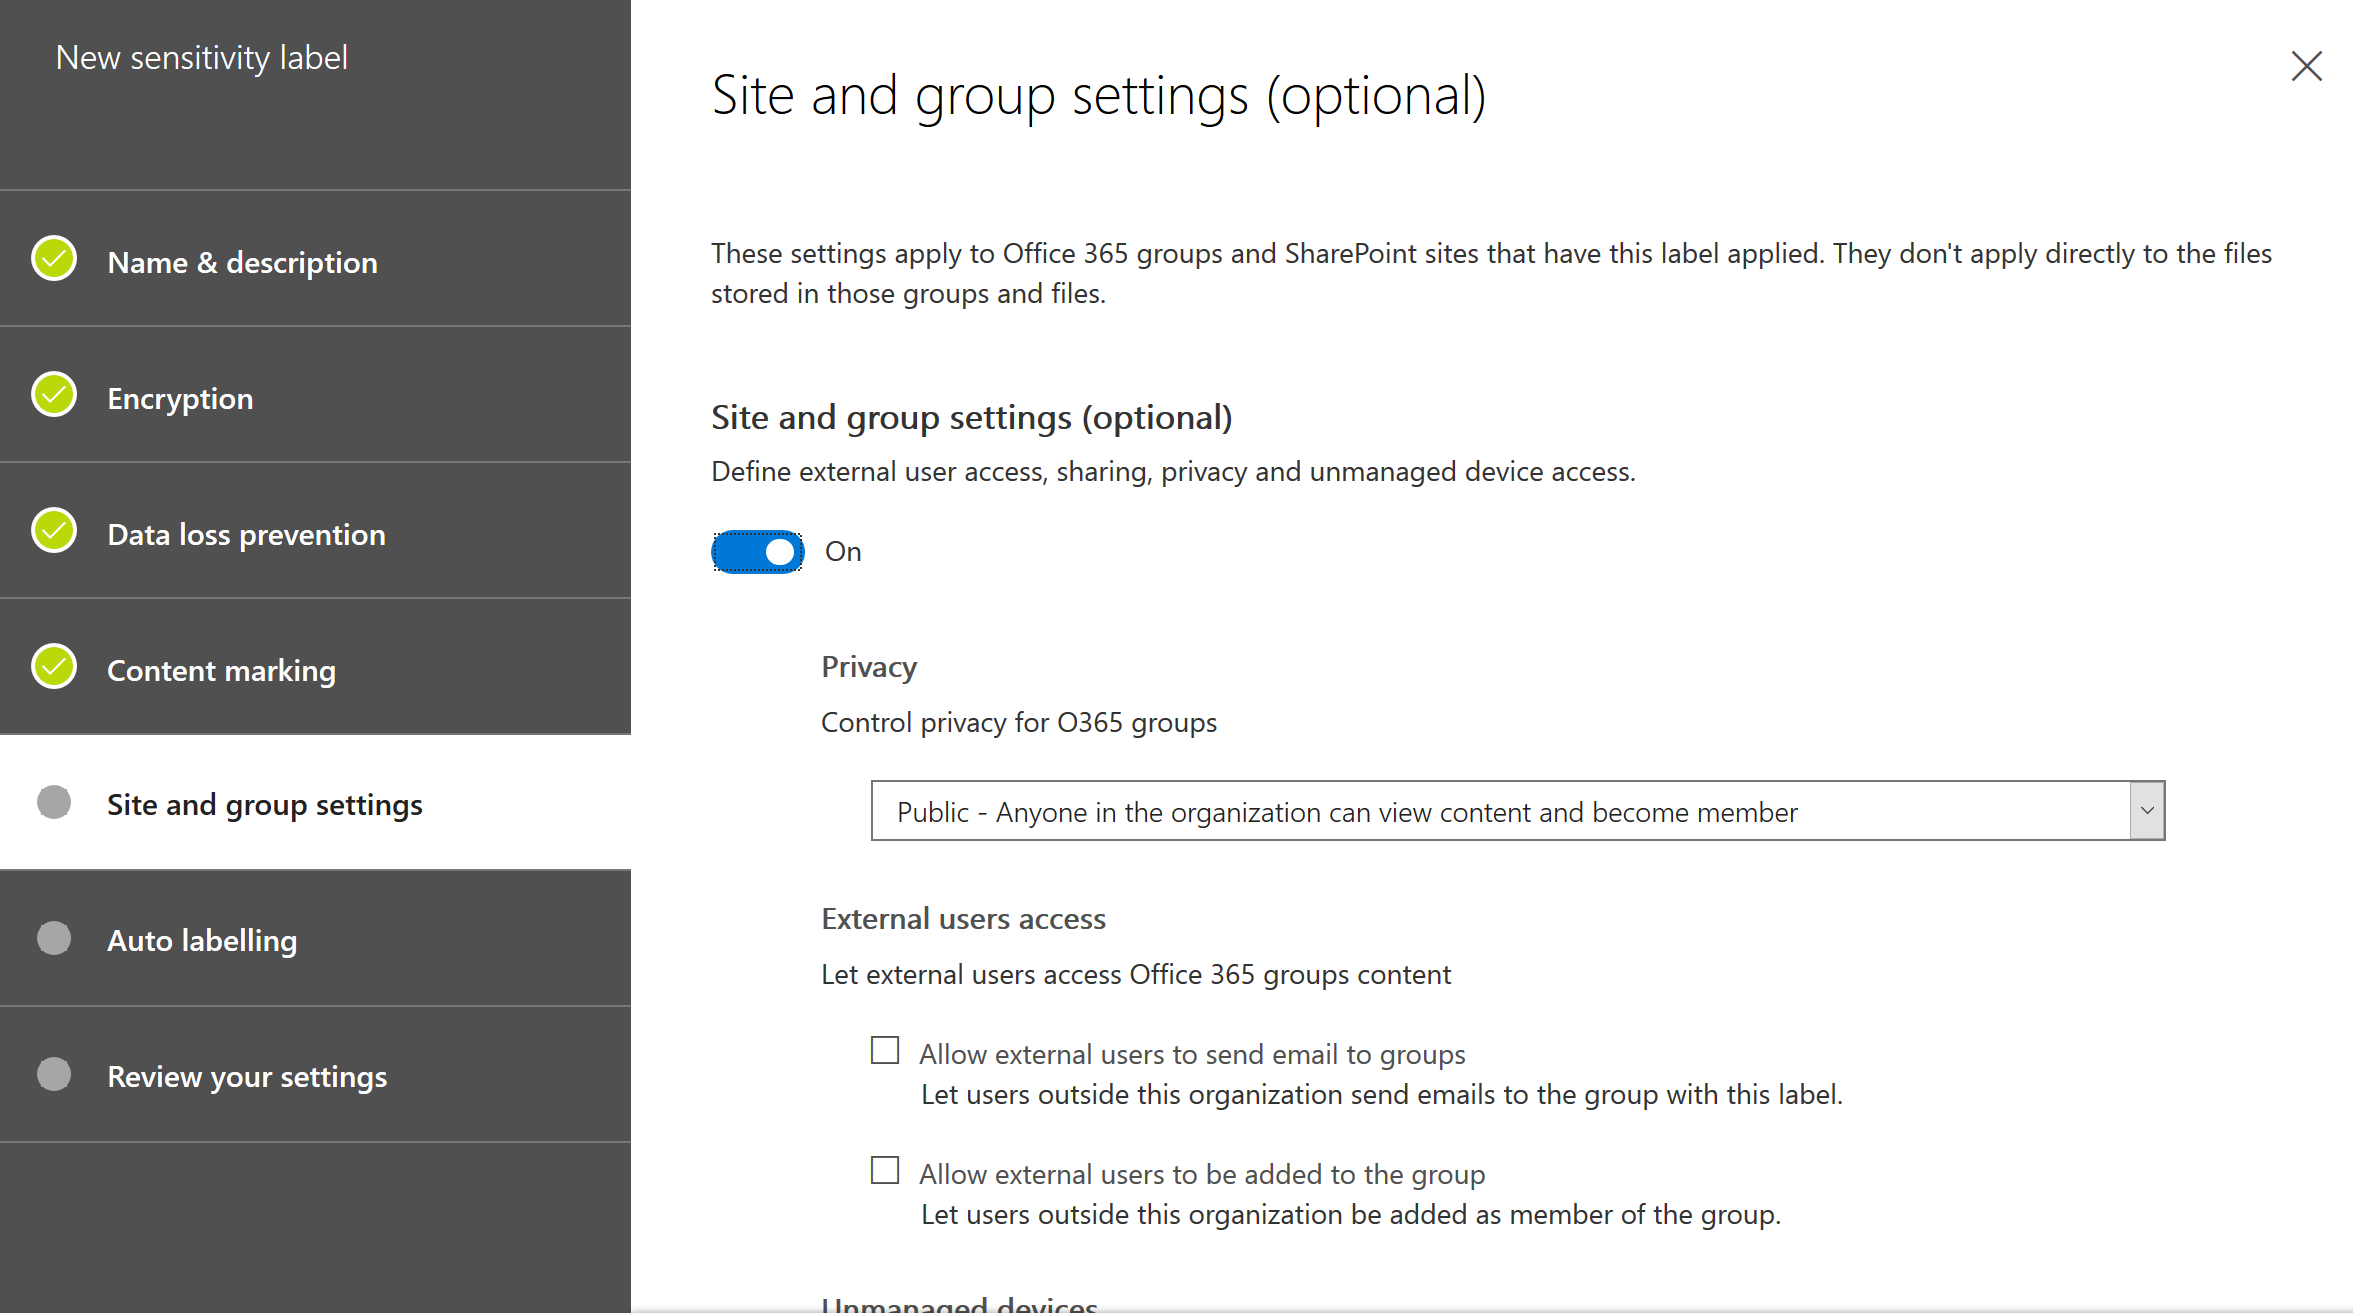 microsoft-information-protection-sensitivity-labels-page-4